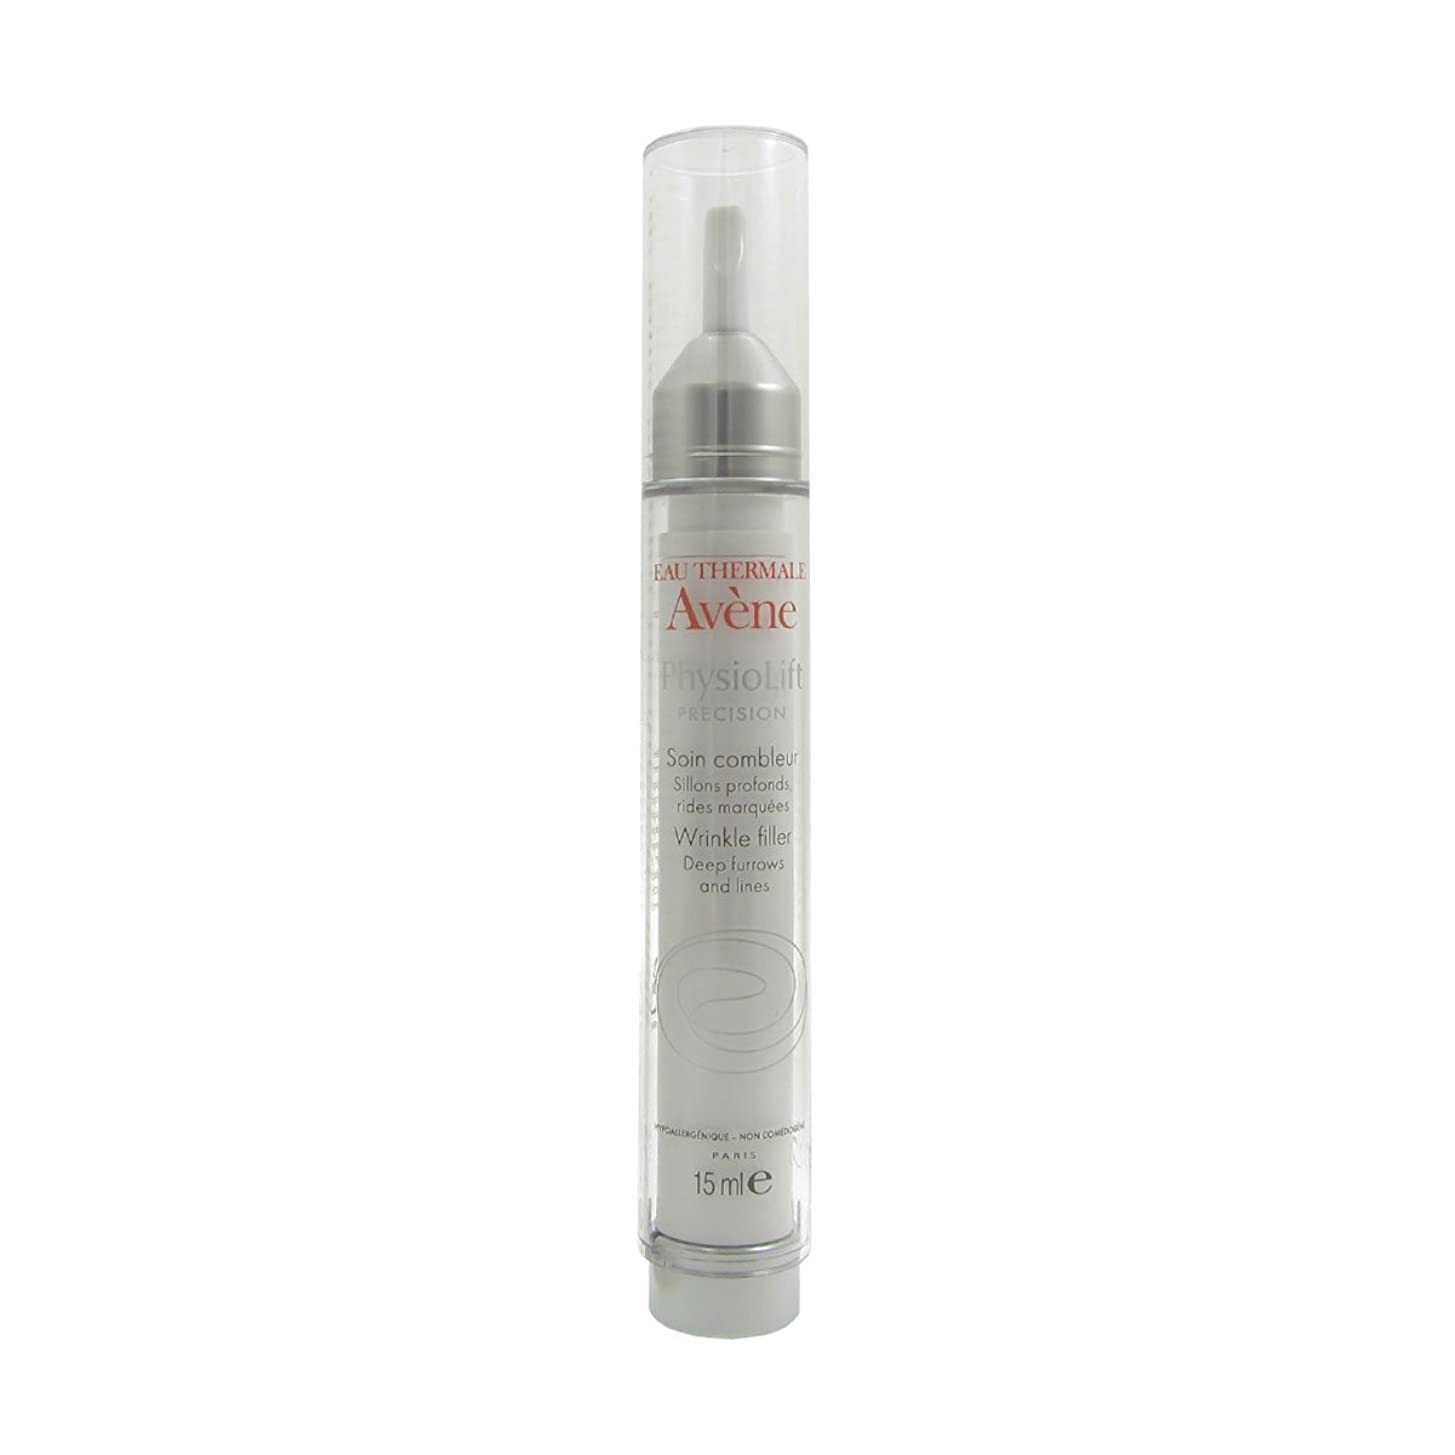 Avene Physiolift Precision Filling Care 15ml [並行輸入品]